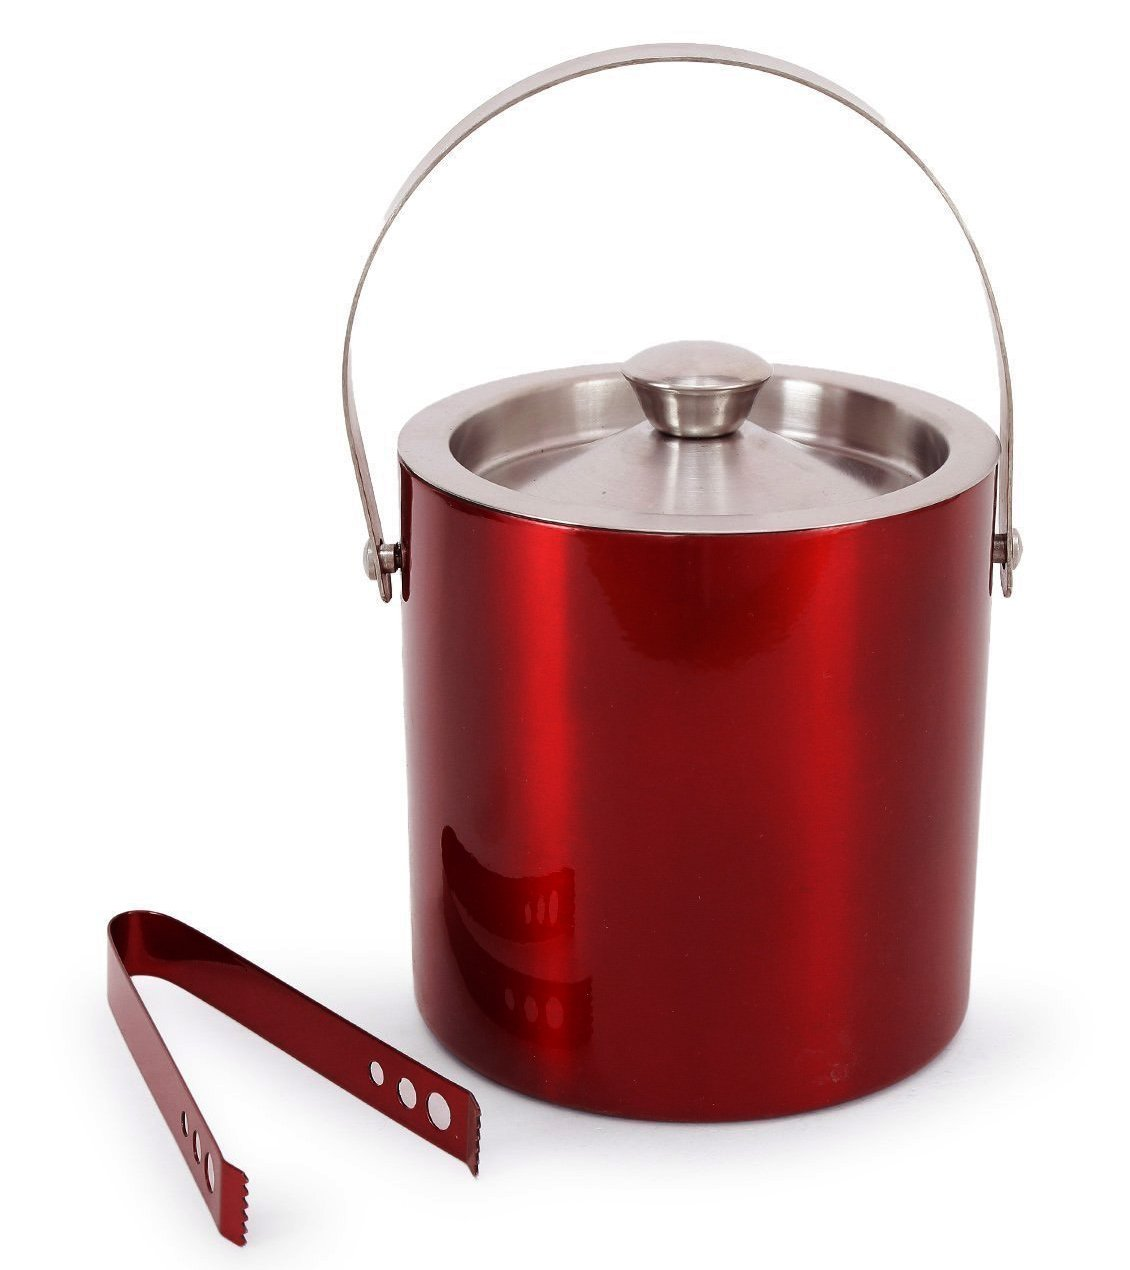 PARIJAT HANDICRAFT Stainless Steel Double Walled/Insulated Red Coloured Ice Bucket with tong - 1750 ml | Bar Tools | Bar Accessories - Ideal for Party Get together and Gifting